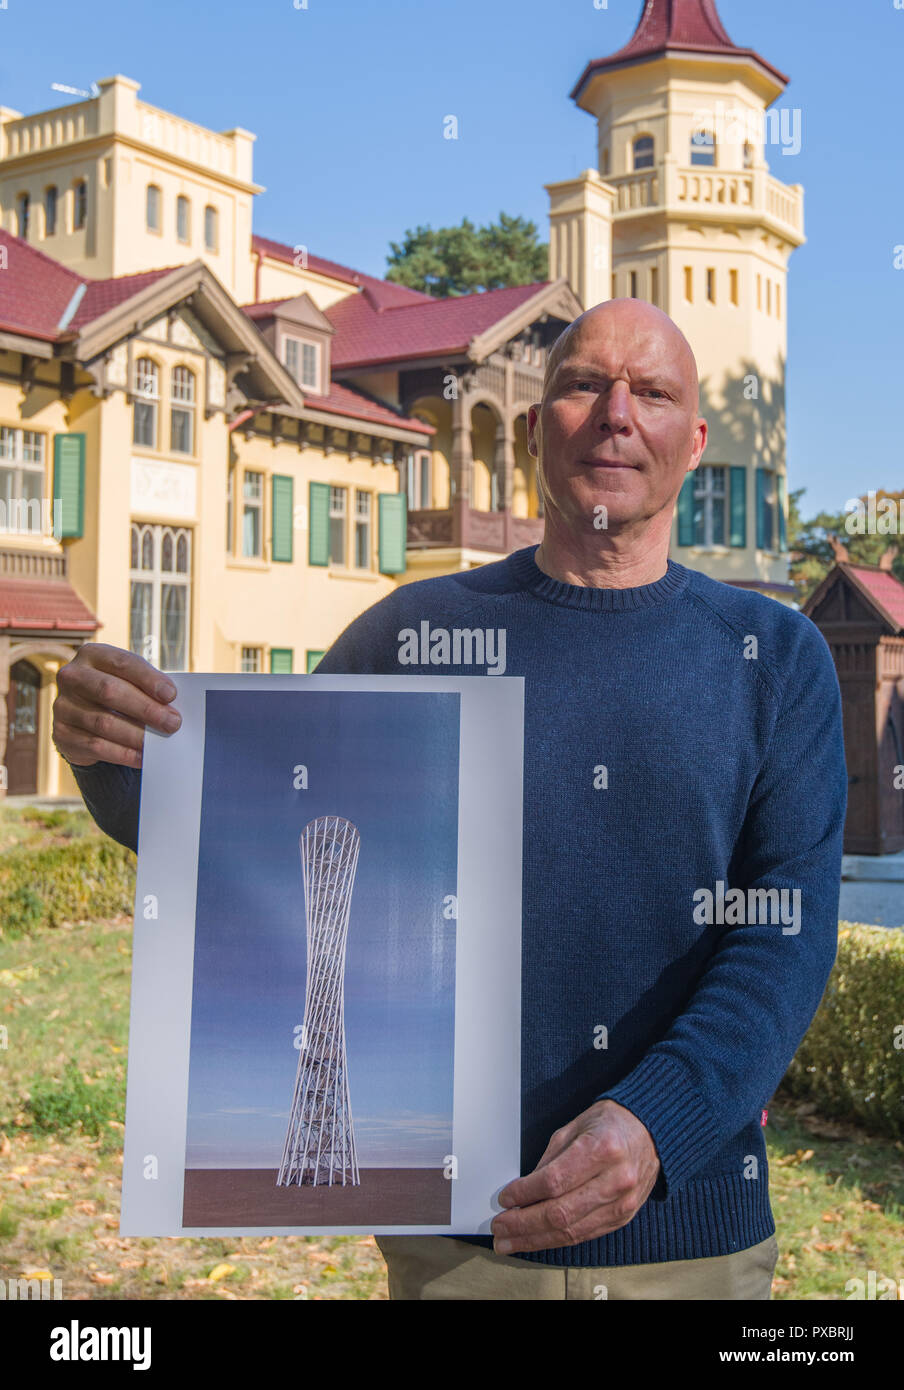 Storkow, Germany. 11th Oct, 2018. Rainer Opolka, entrepreneur and artist of the company Zweibrüder Kunst- und Kultur GmbH, stands in front of his castle Hubertushöhe and shows a design of an observation tower. Rainer Opolka wants to develop the area around Hubertushöhe Castle into an art and literature park. (to dpa-KORR 'From elitist castle hotel to art and literature park for all' from 21.10.2018) Credit: Patrick Pleul/ZB/dpa/Alamy Live News - Stock Image